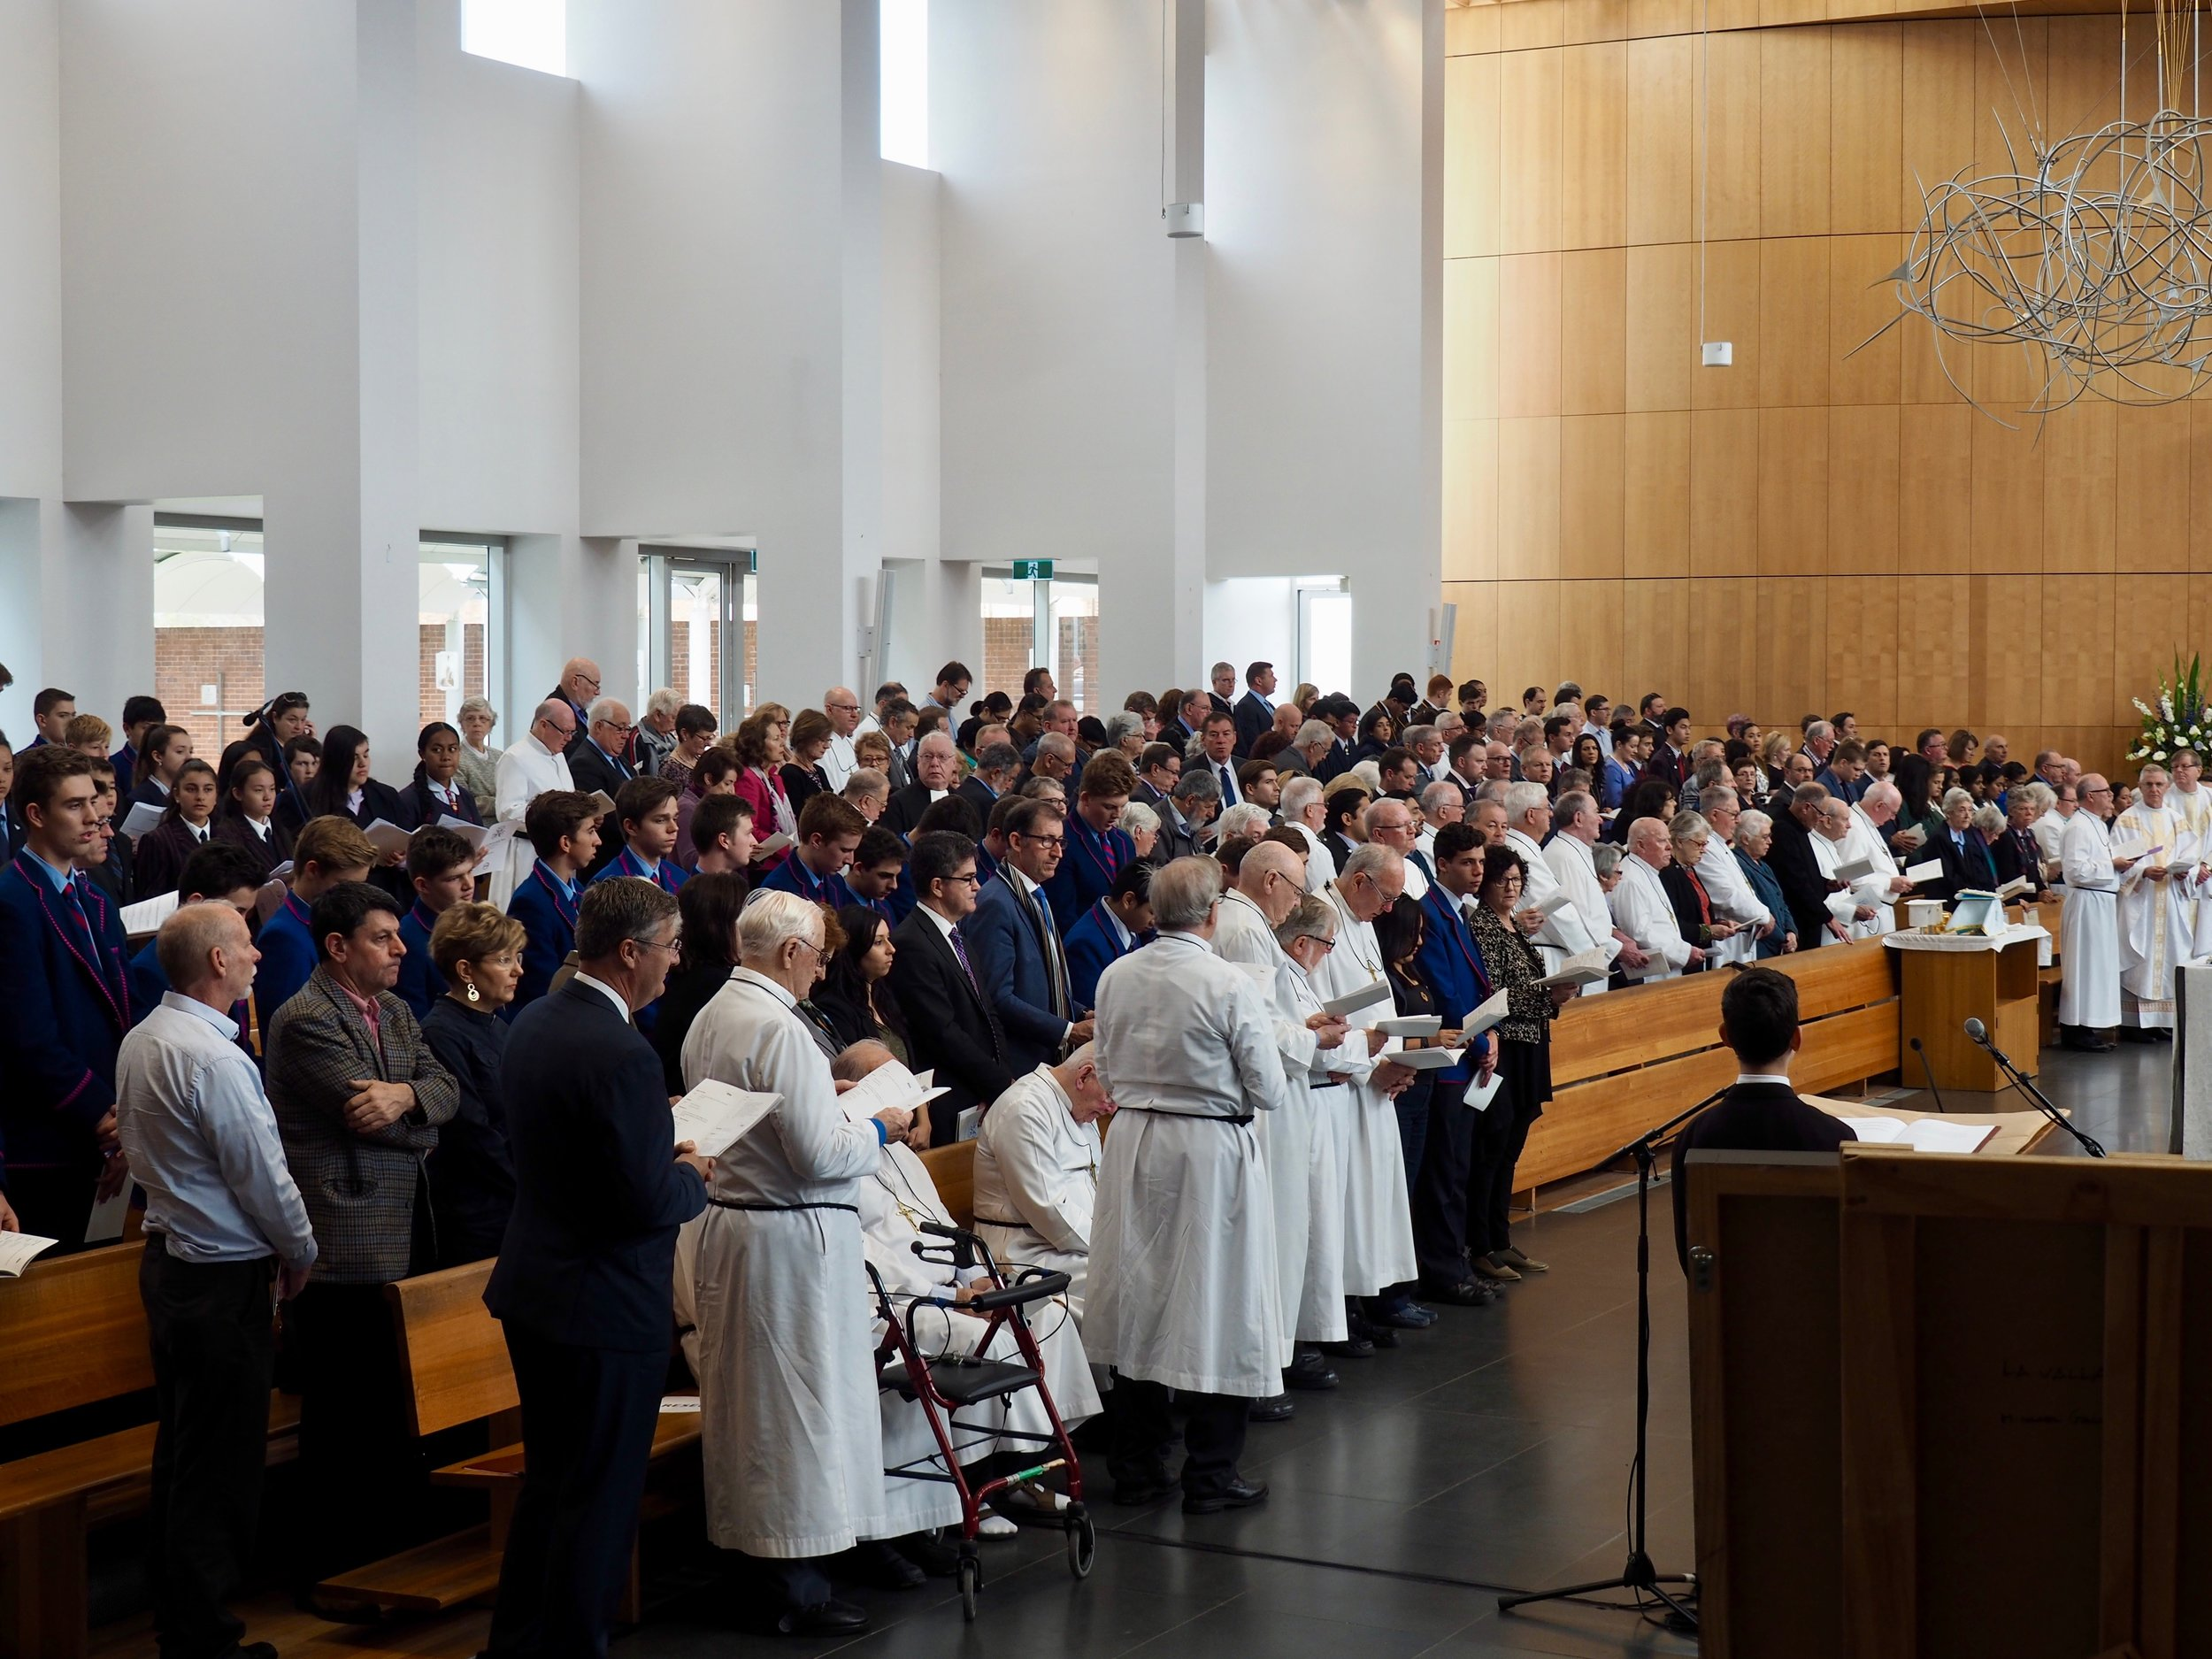 Bicentenary Mass Sydney 12 Aug 2017 Photos by Paul Harris 00019.jpg